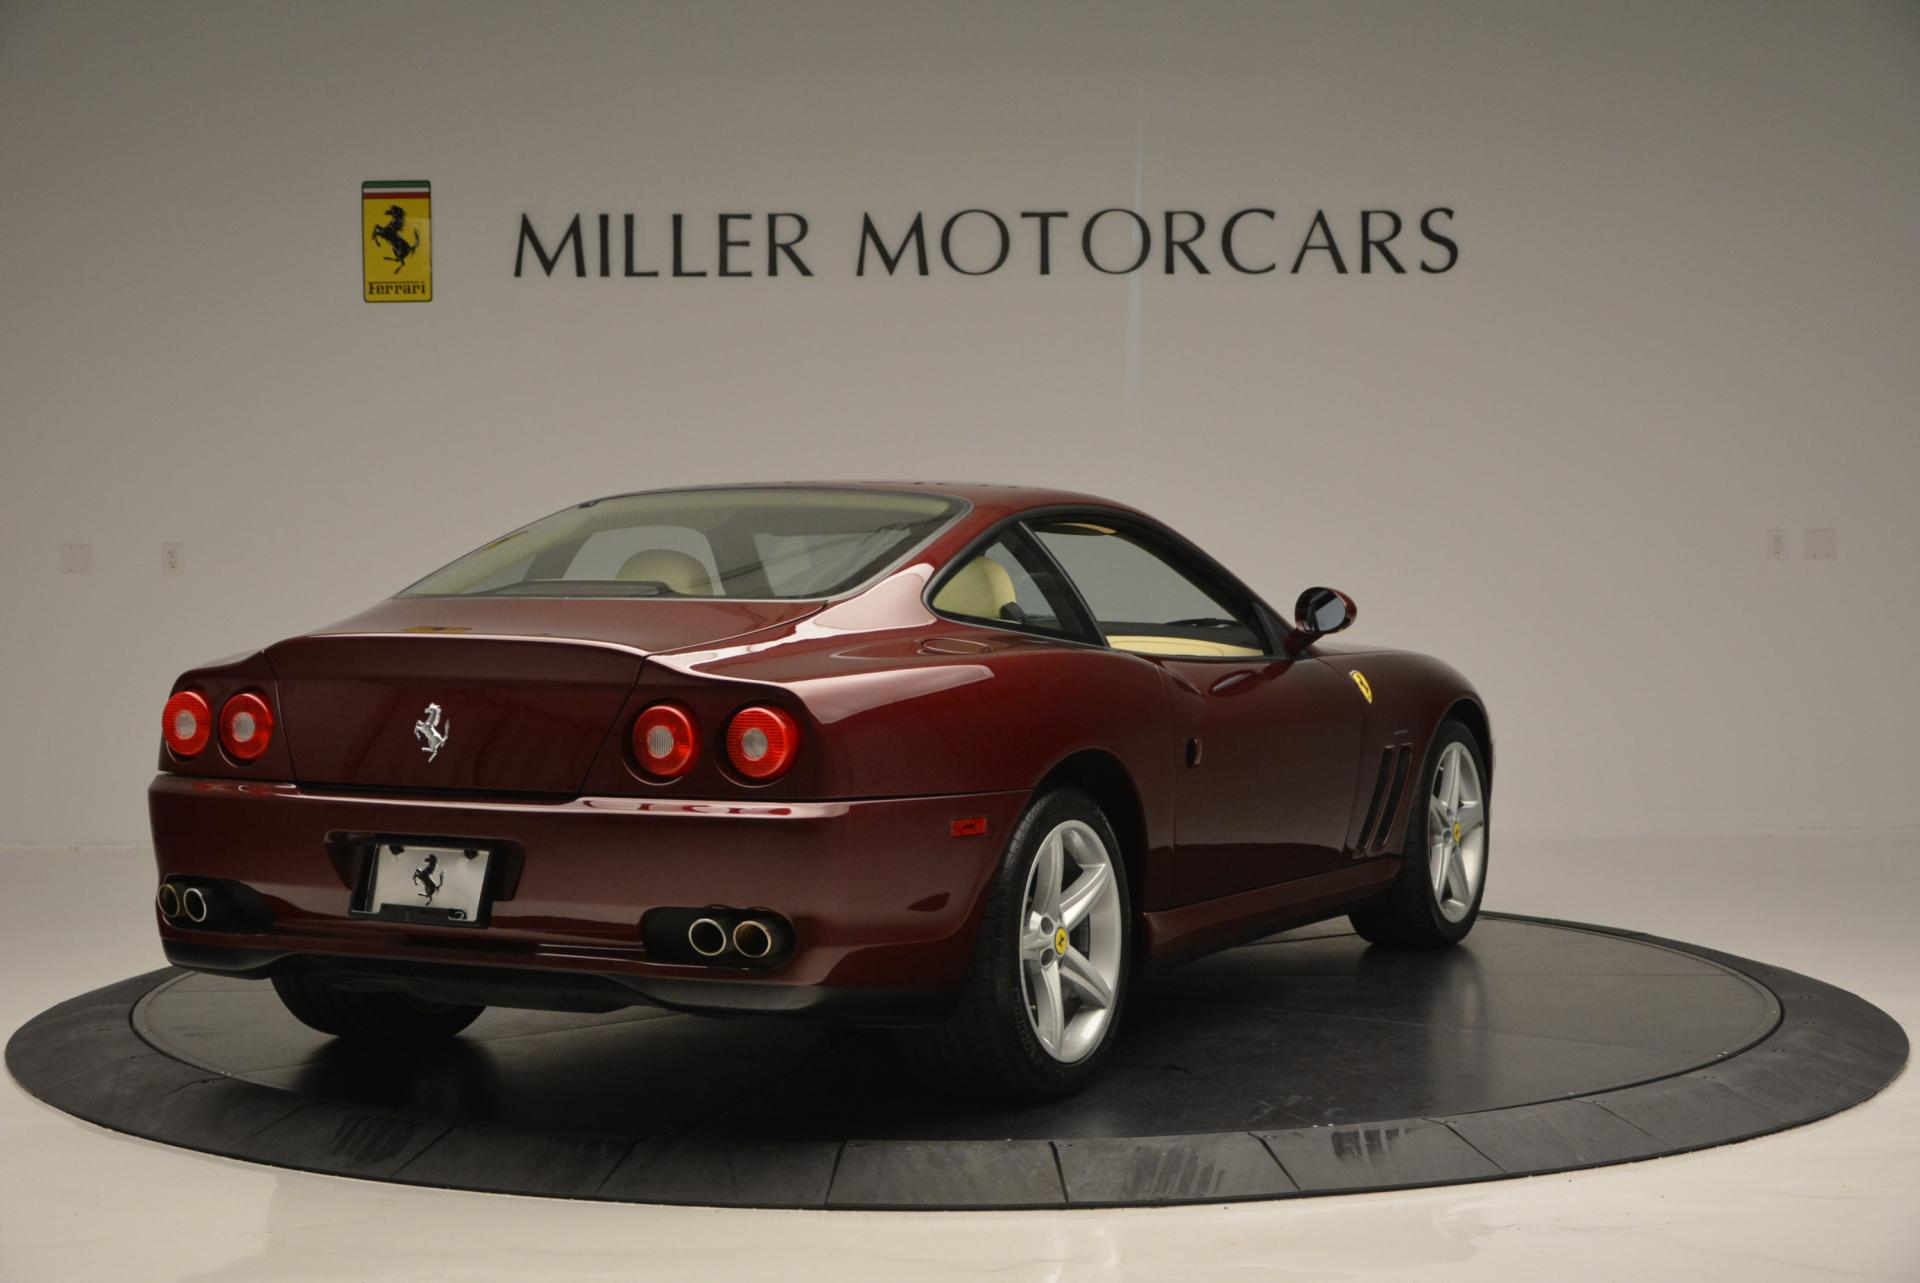 Used 2003 Ferrari 575M Maranello 6-Speed Manual For Sale In Westport, CT 143_p7